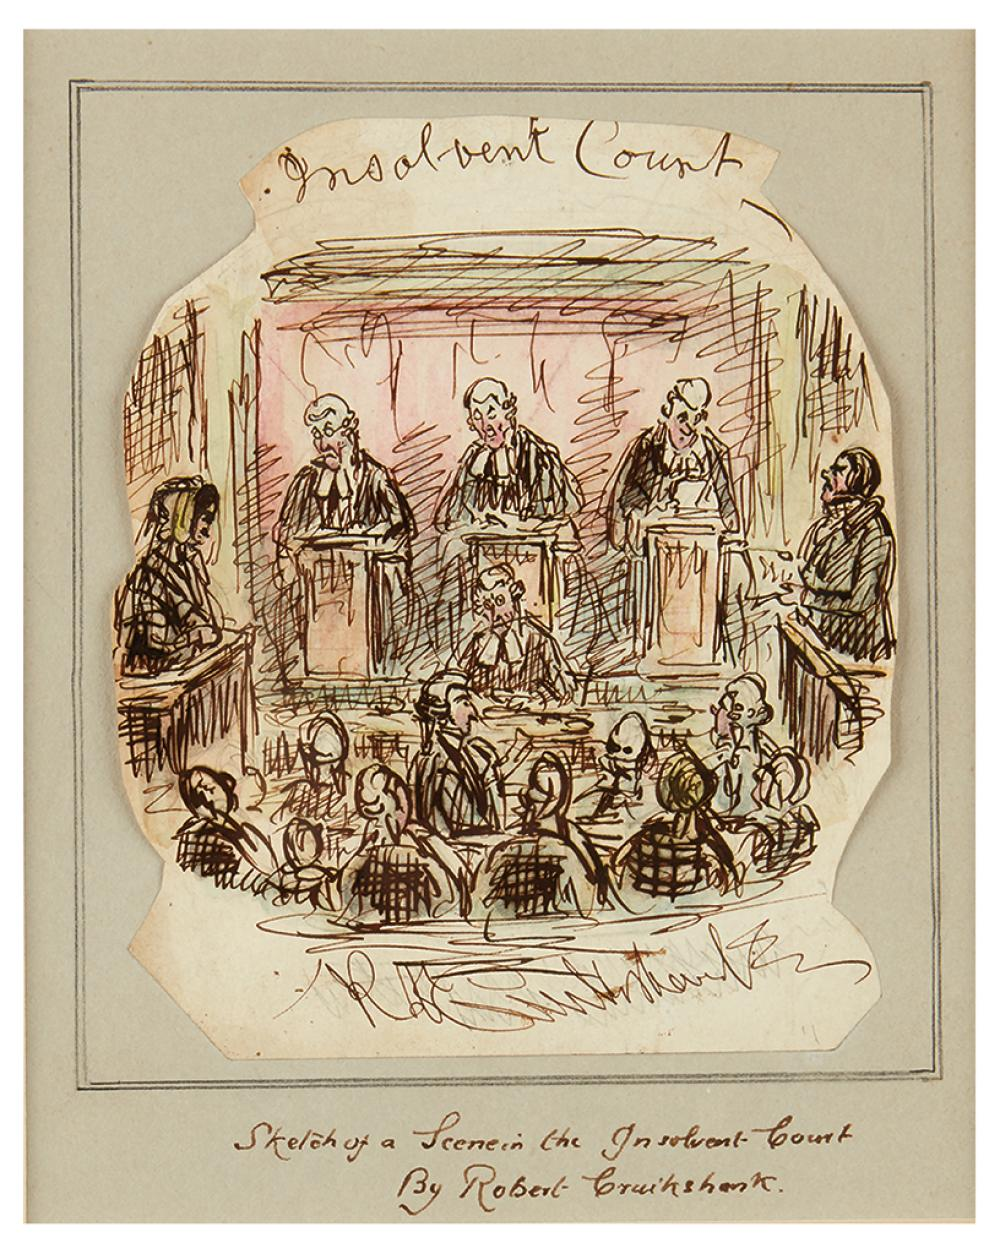 (LAW.) Cruikshank, Robert, attributed to. Insolvent Court.